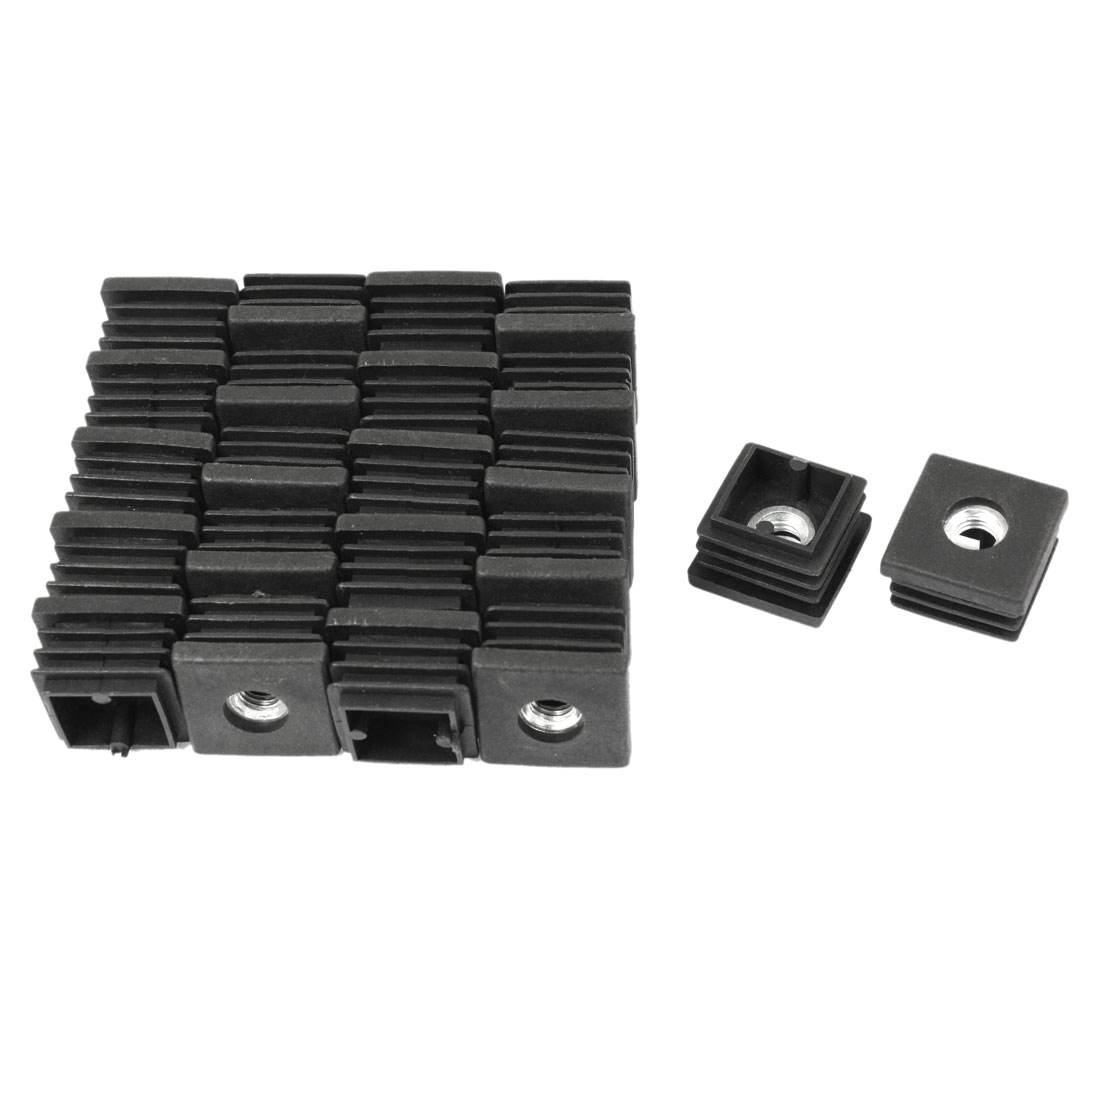 25mm x 25mm x M8 Threaded Square Tube Inserts Caps Cover Protectors Black 24 Pcs